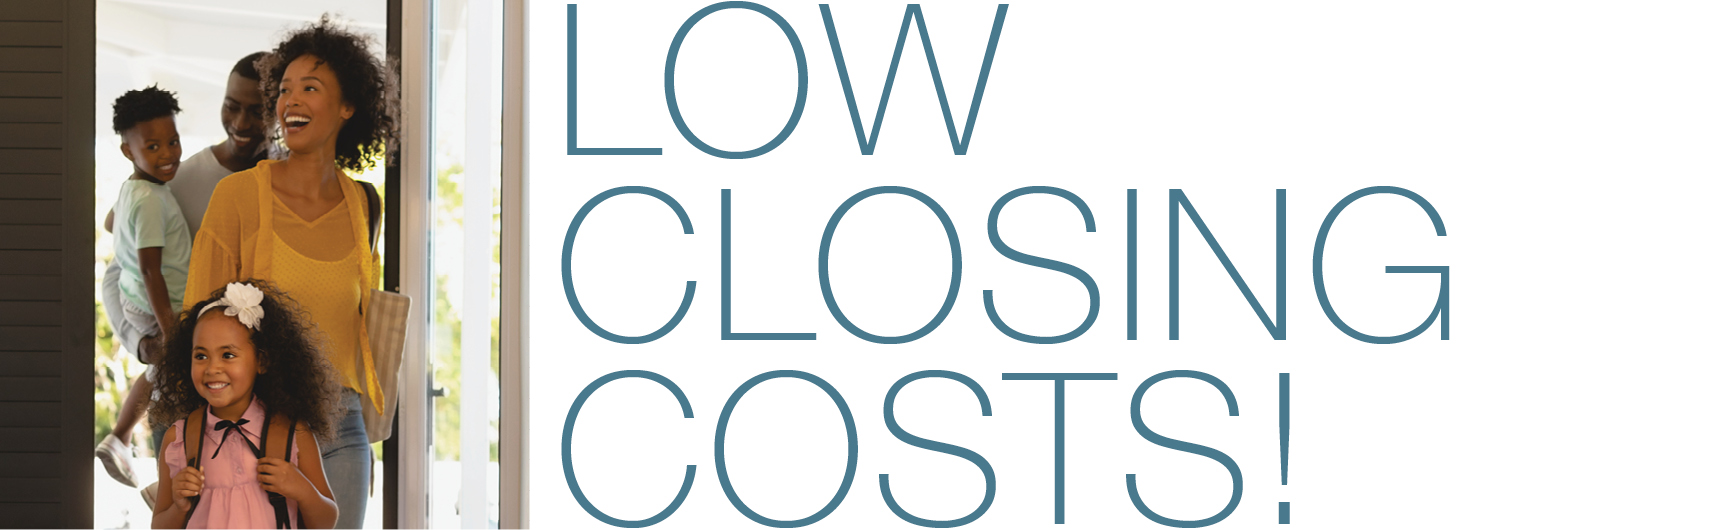 Low closing costs on mortages